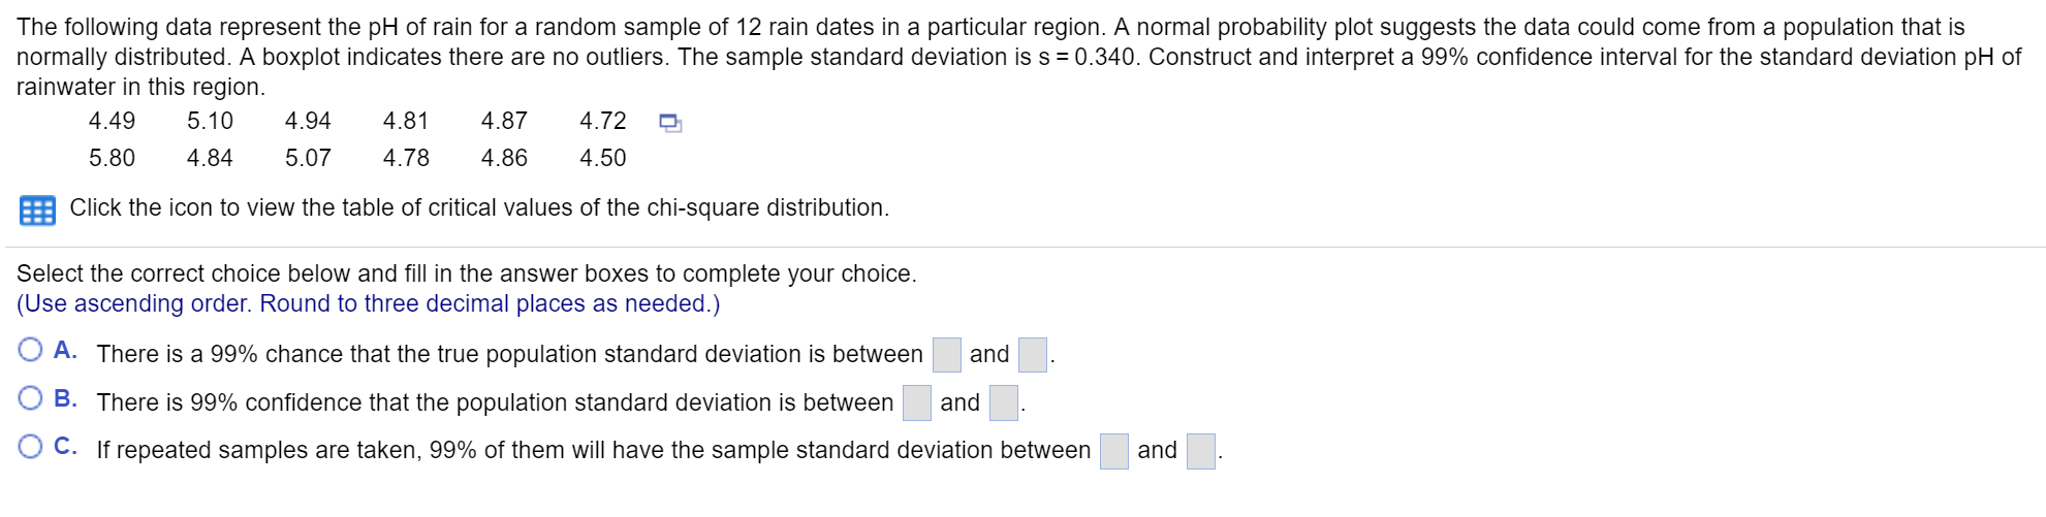 The Following Data Represent The Ph Of Rain For A